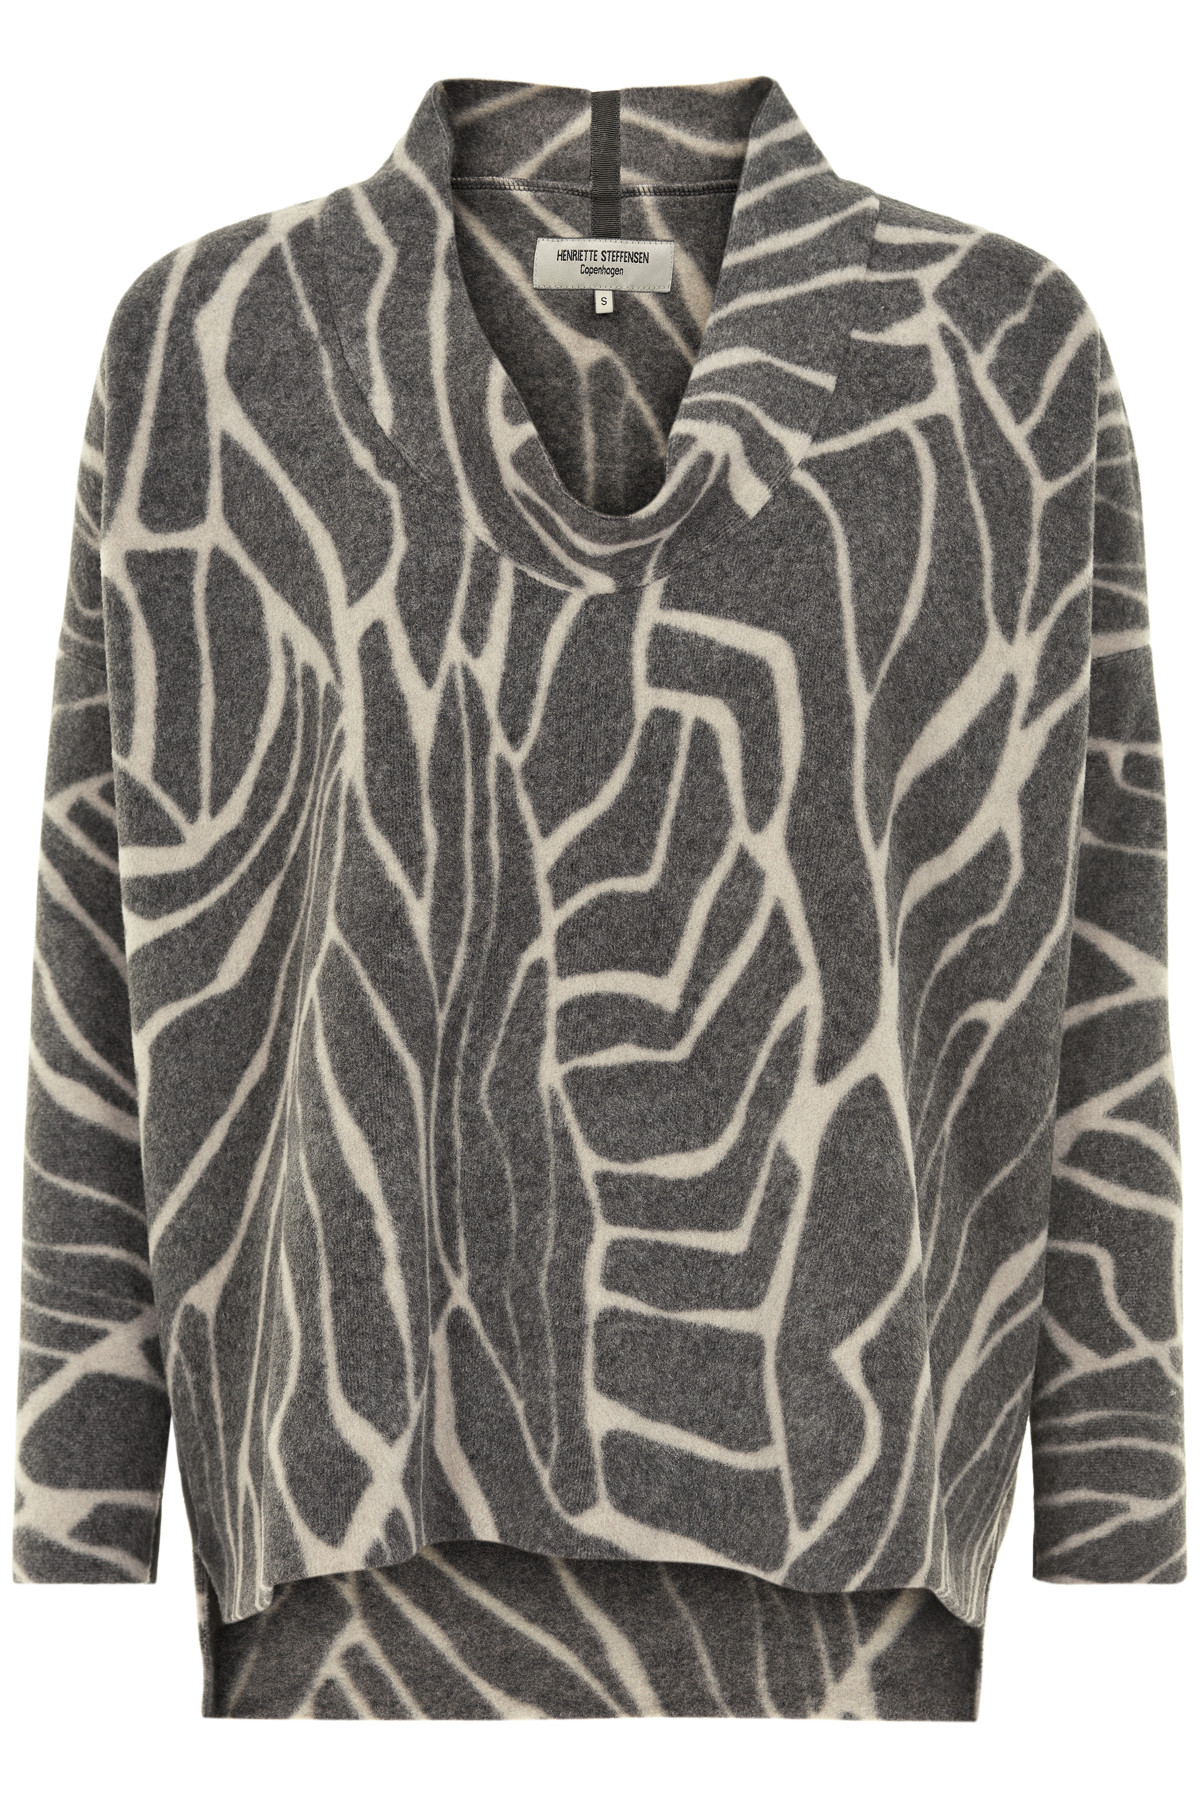 Image of   HENRIETTE STEFFENSEN Copenhagen 1306 SWEATER LEAVES (Leaves, M)